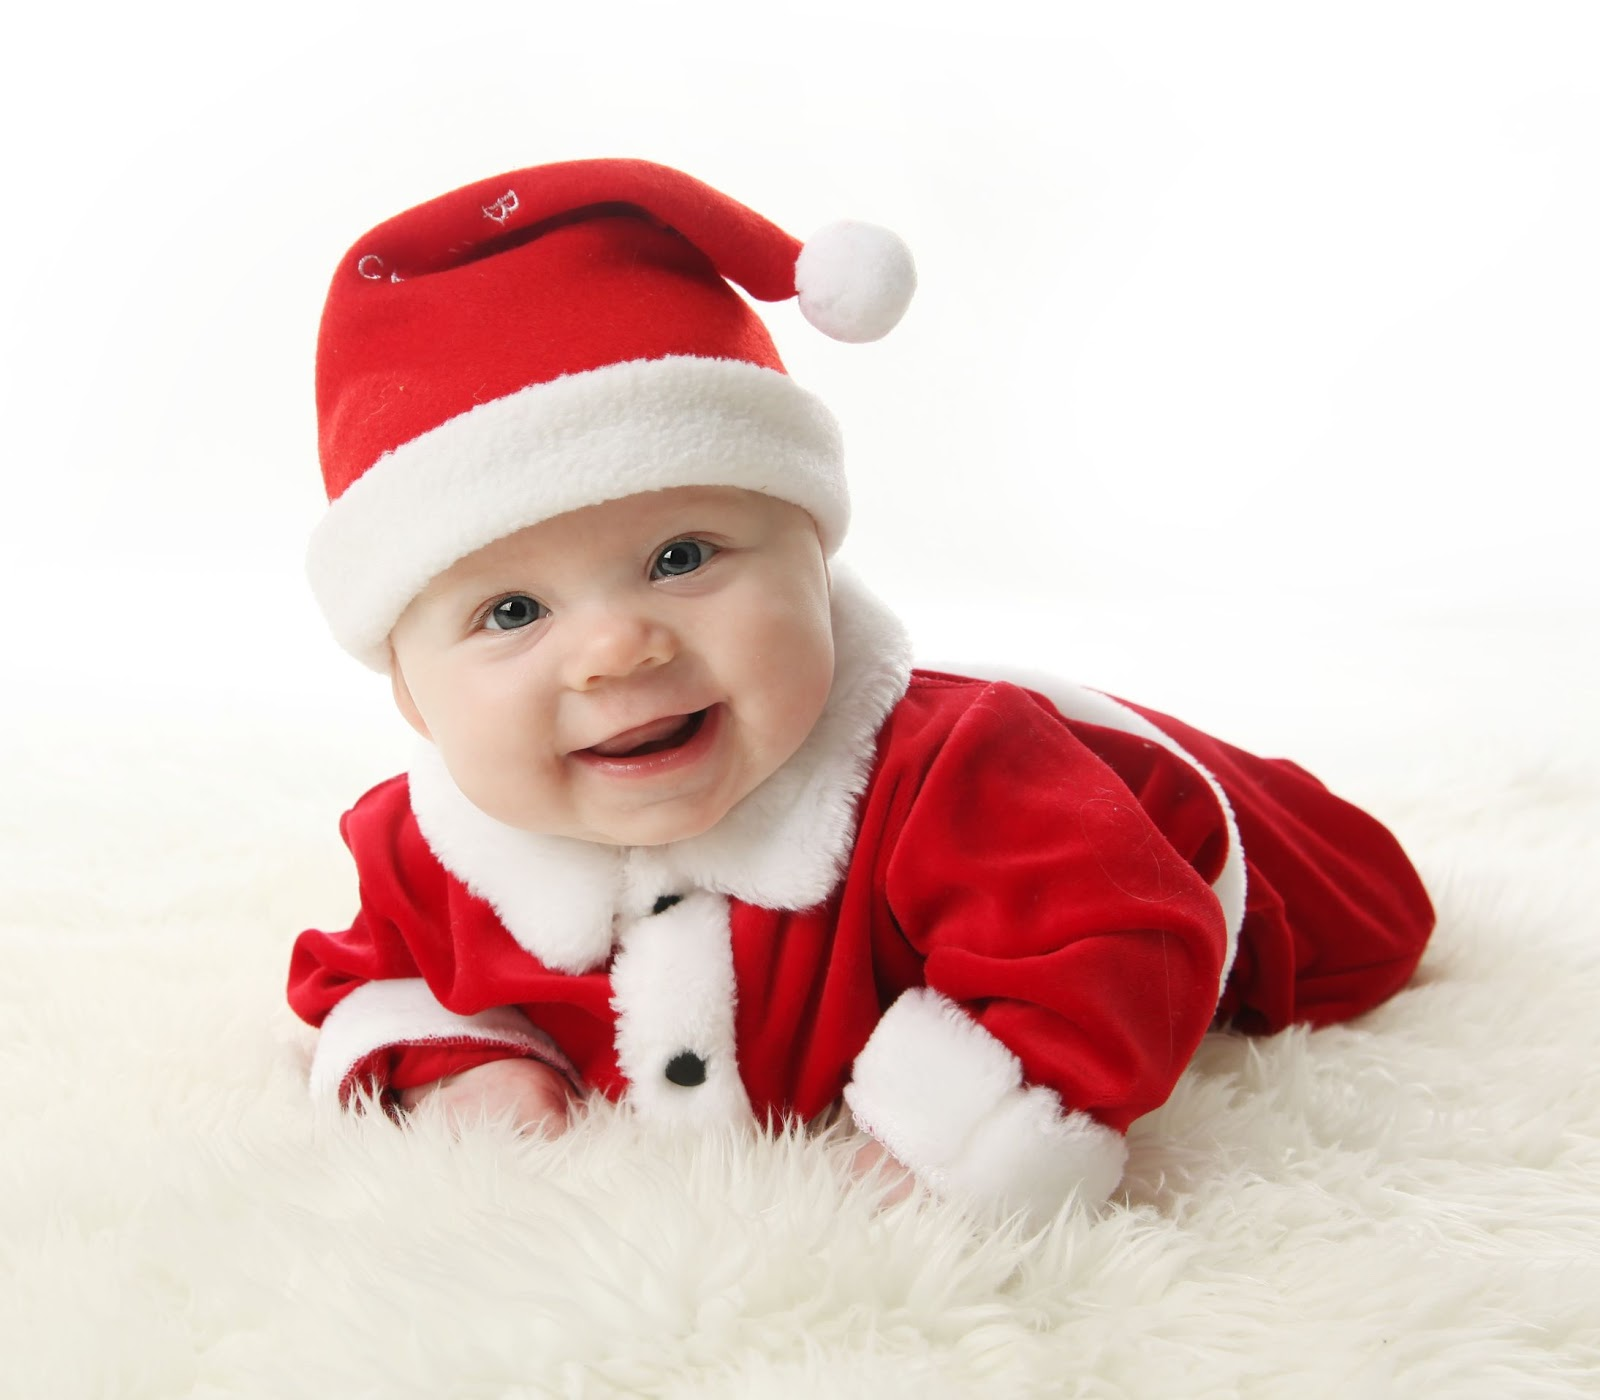 Best Profile Pictures: Cute Christmas Baby Pictures